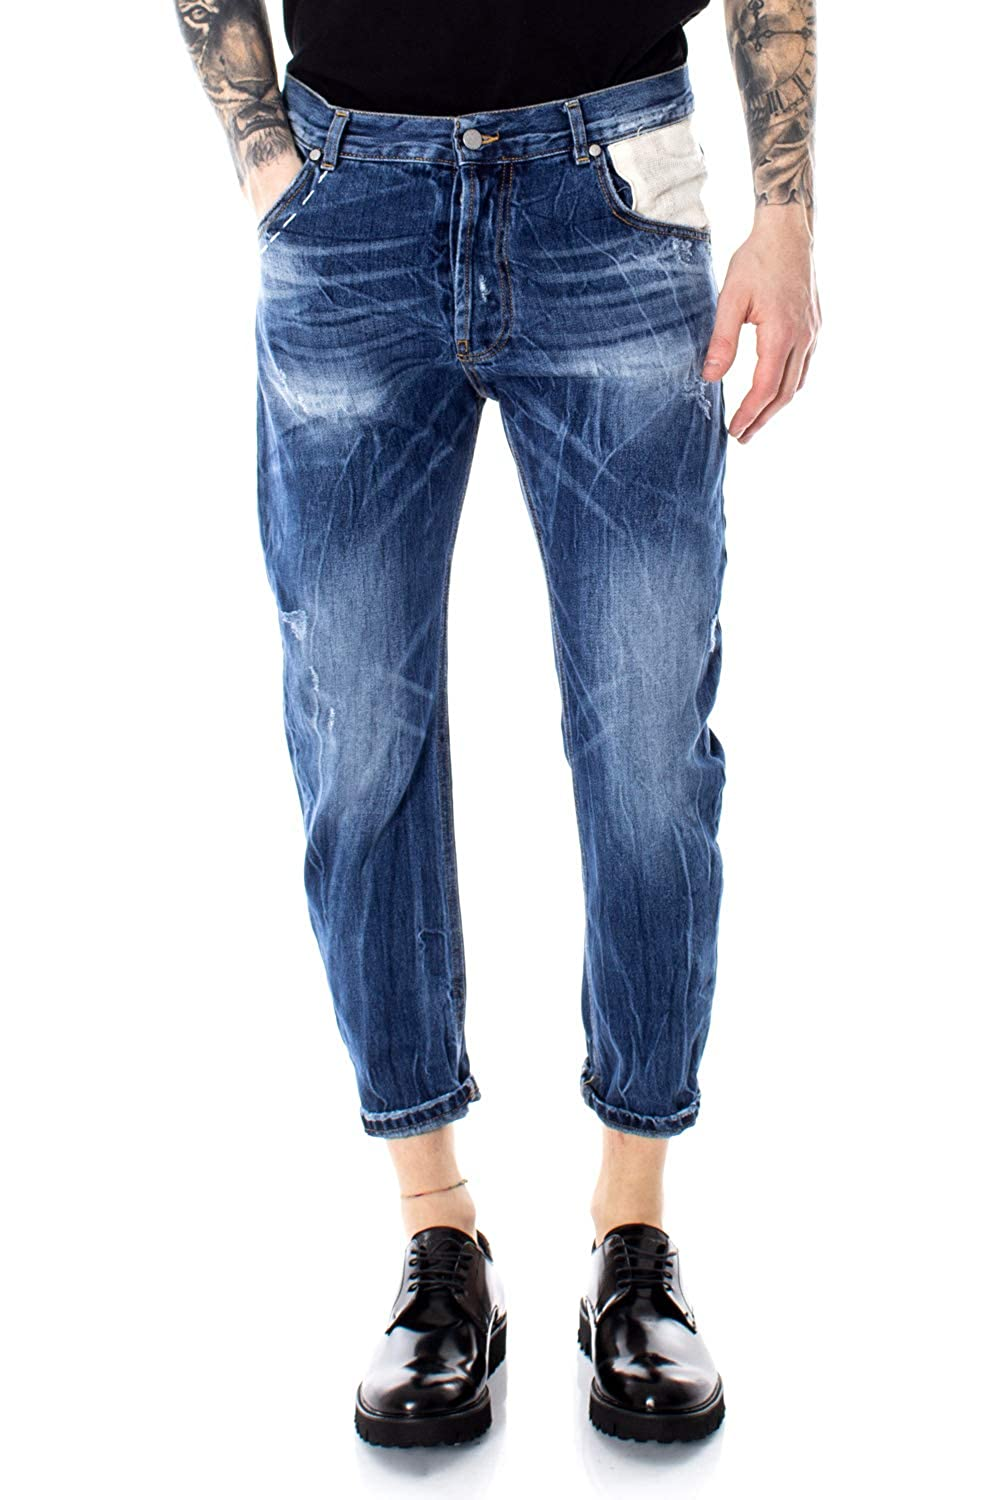 Over-D Man Jeans Patch Free